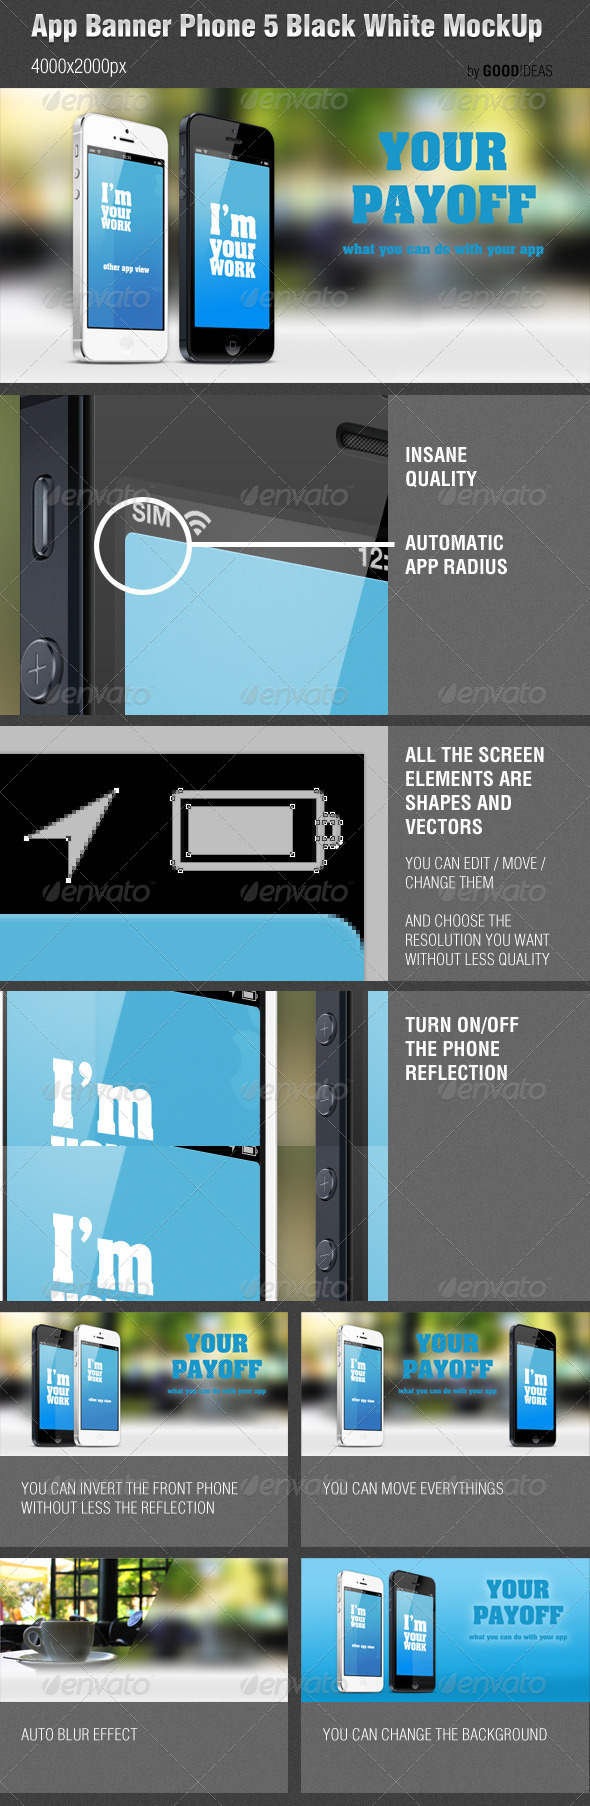 GraphicRiver App Banner iPhone 5 Black White MockUp Real Photo 4666060